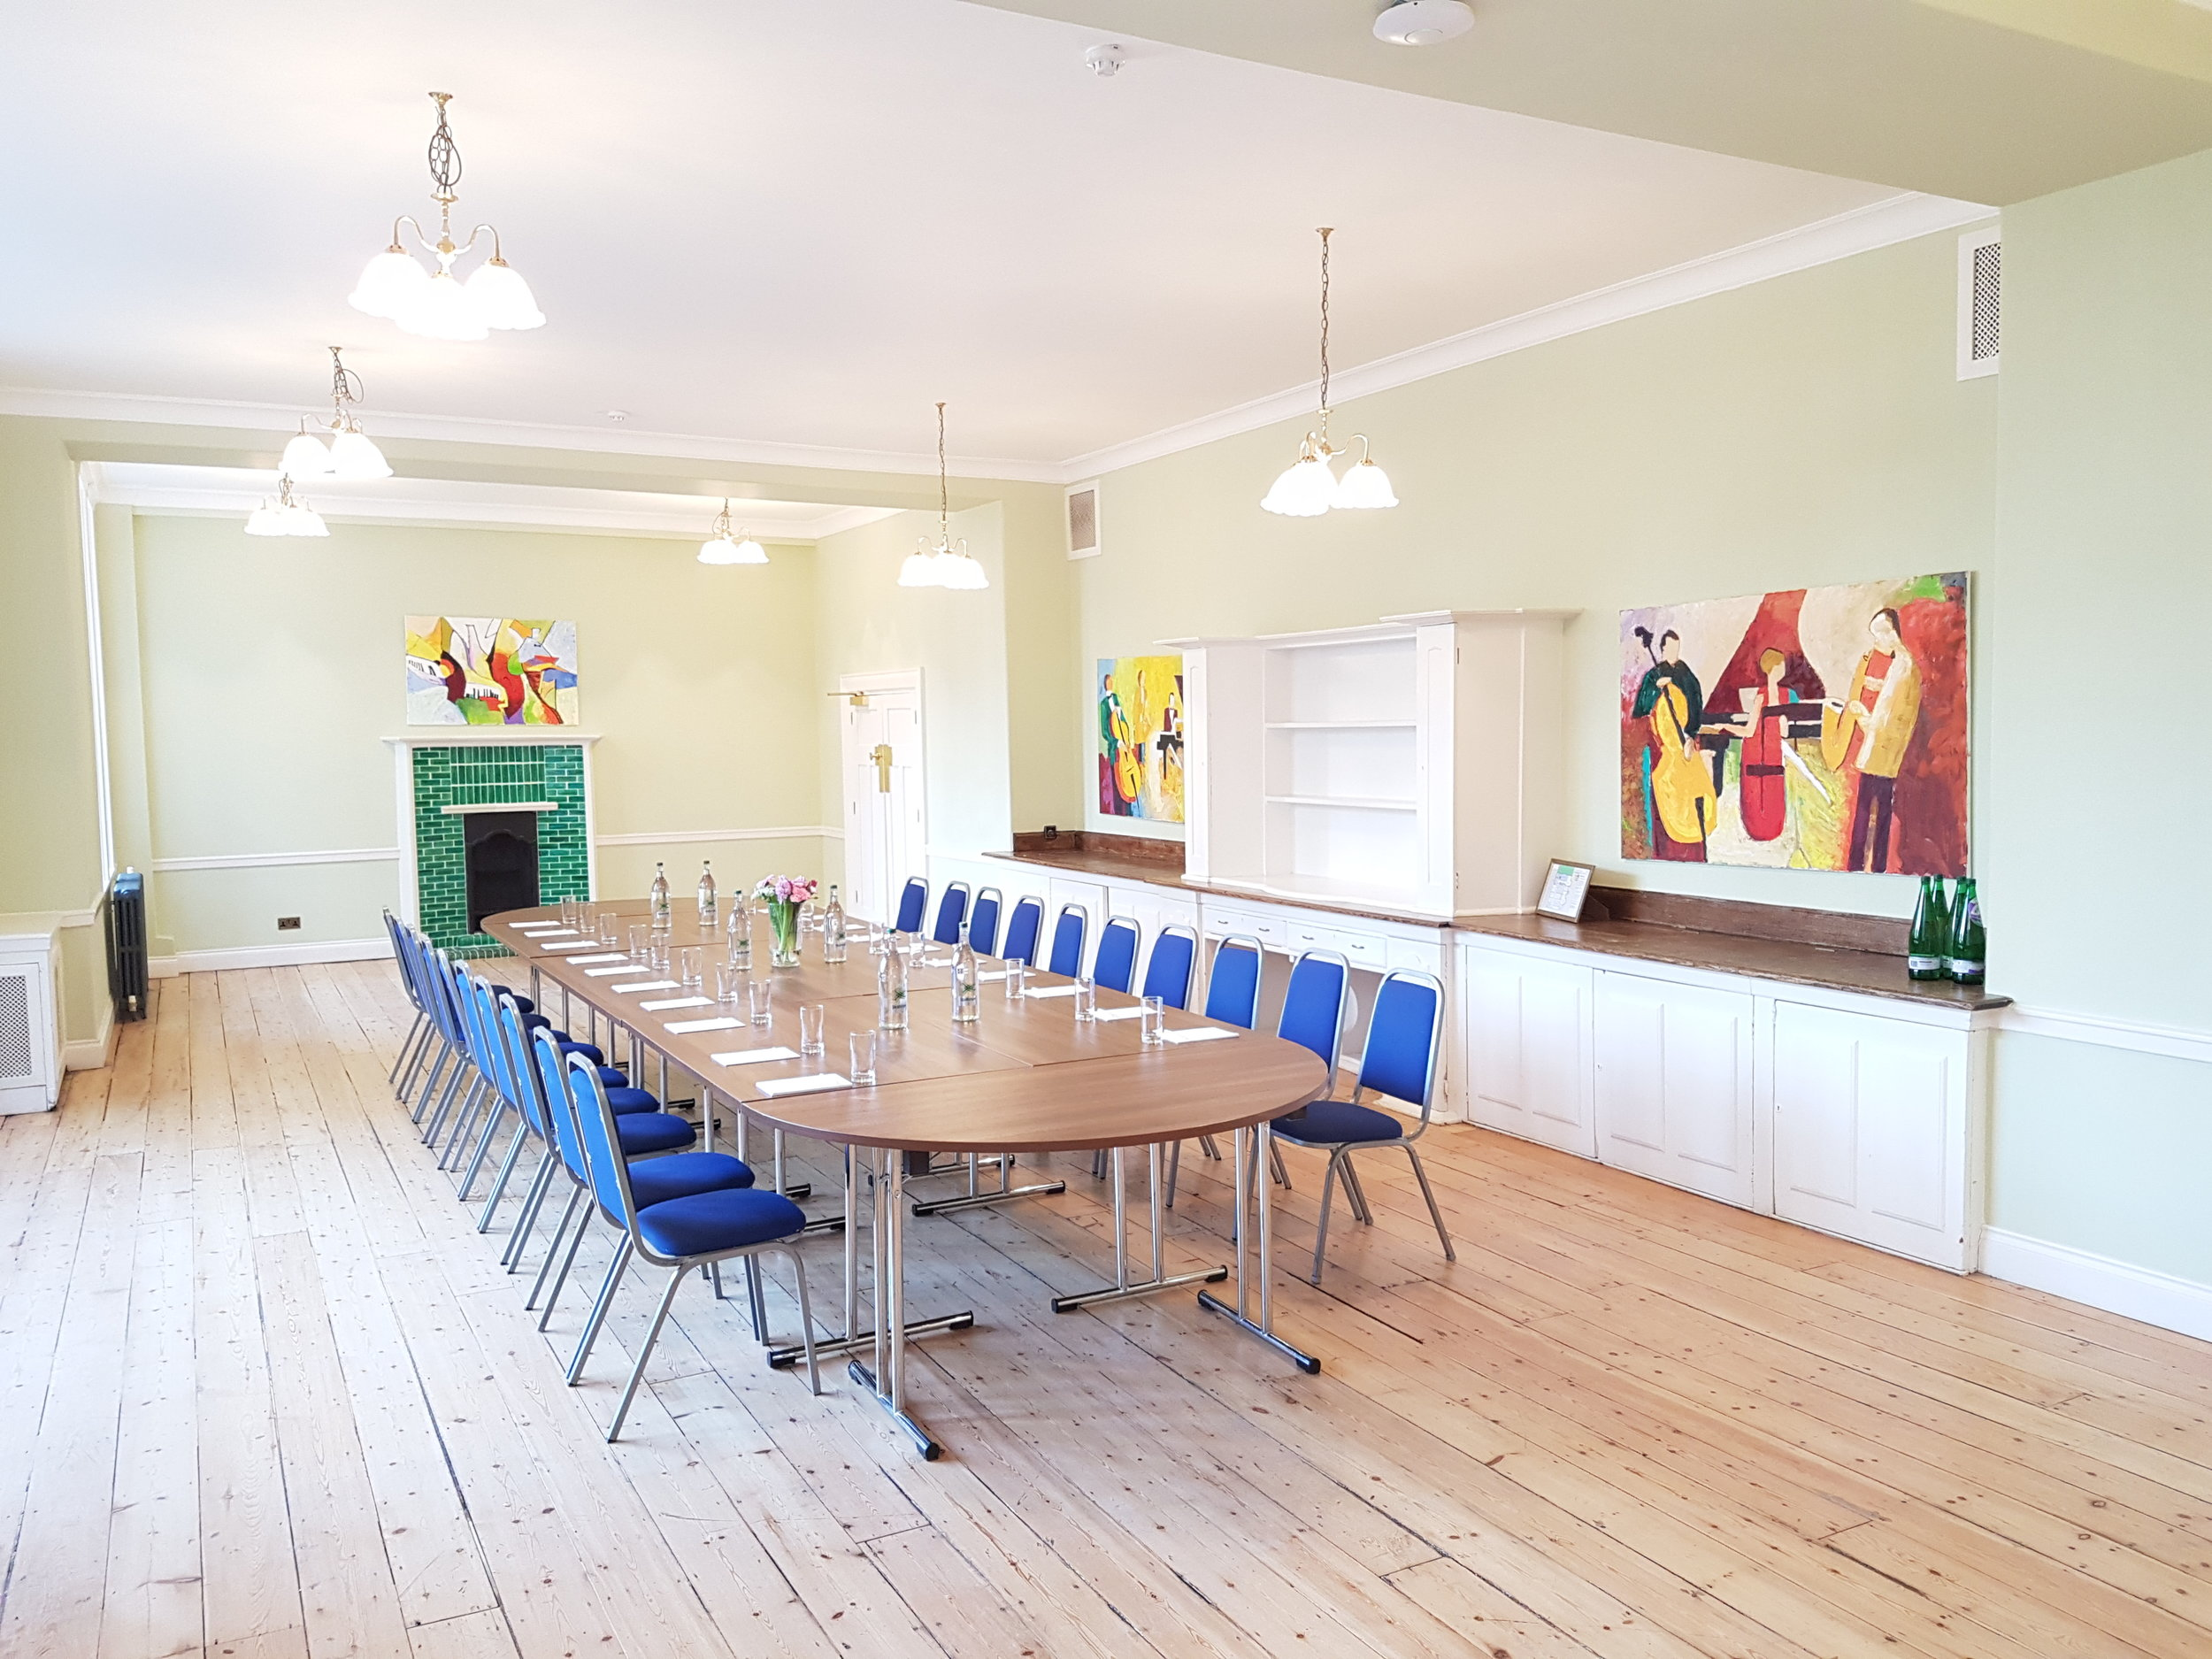 Lethaby Conference & Meeting Room